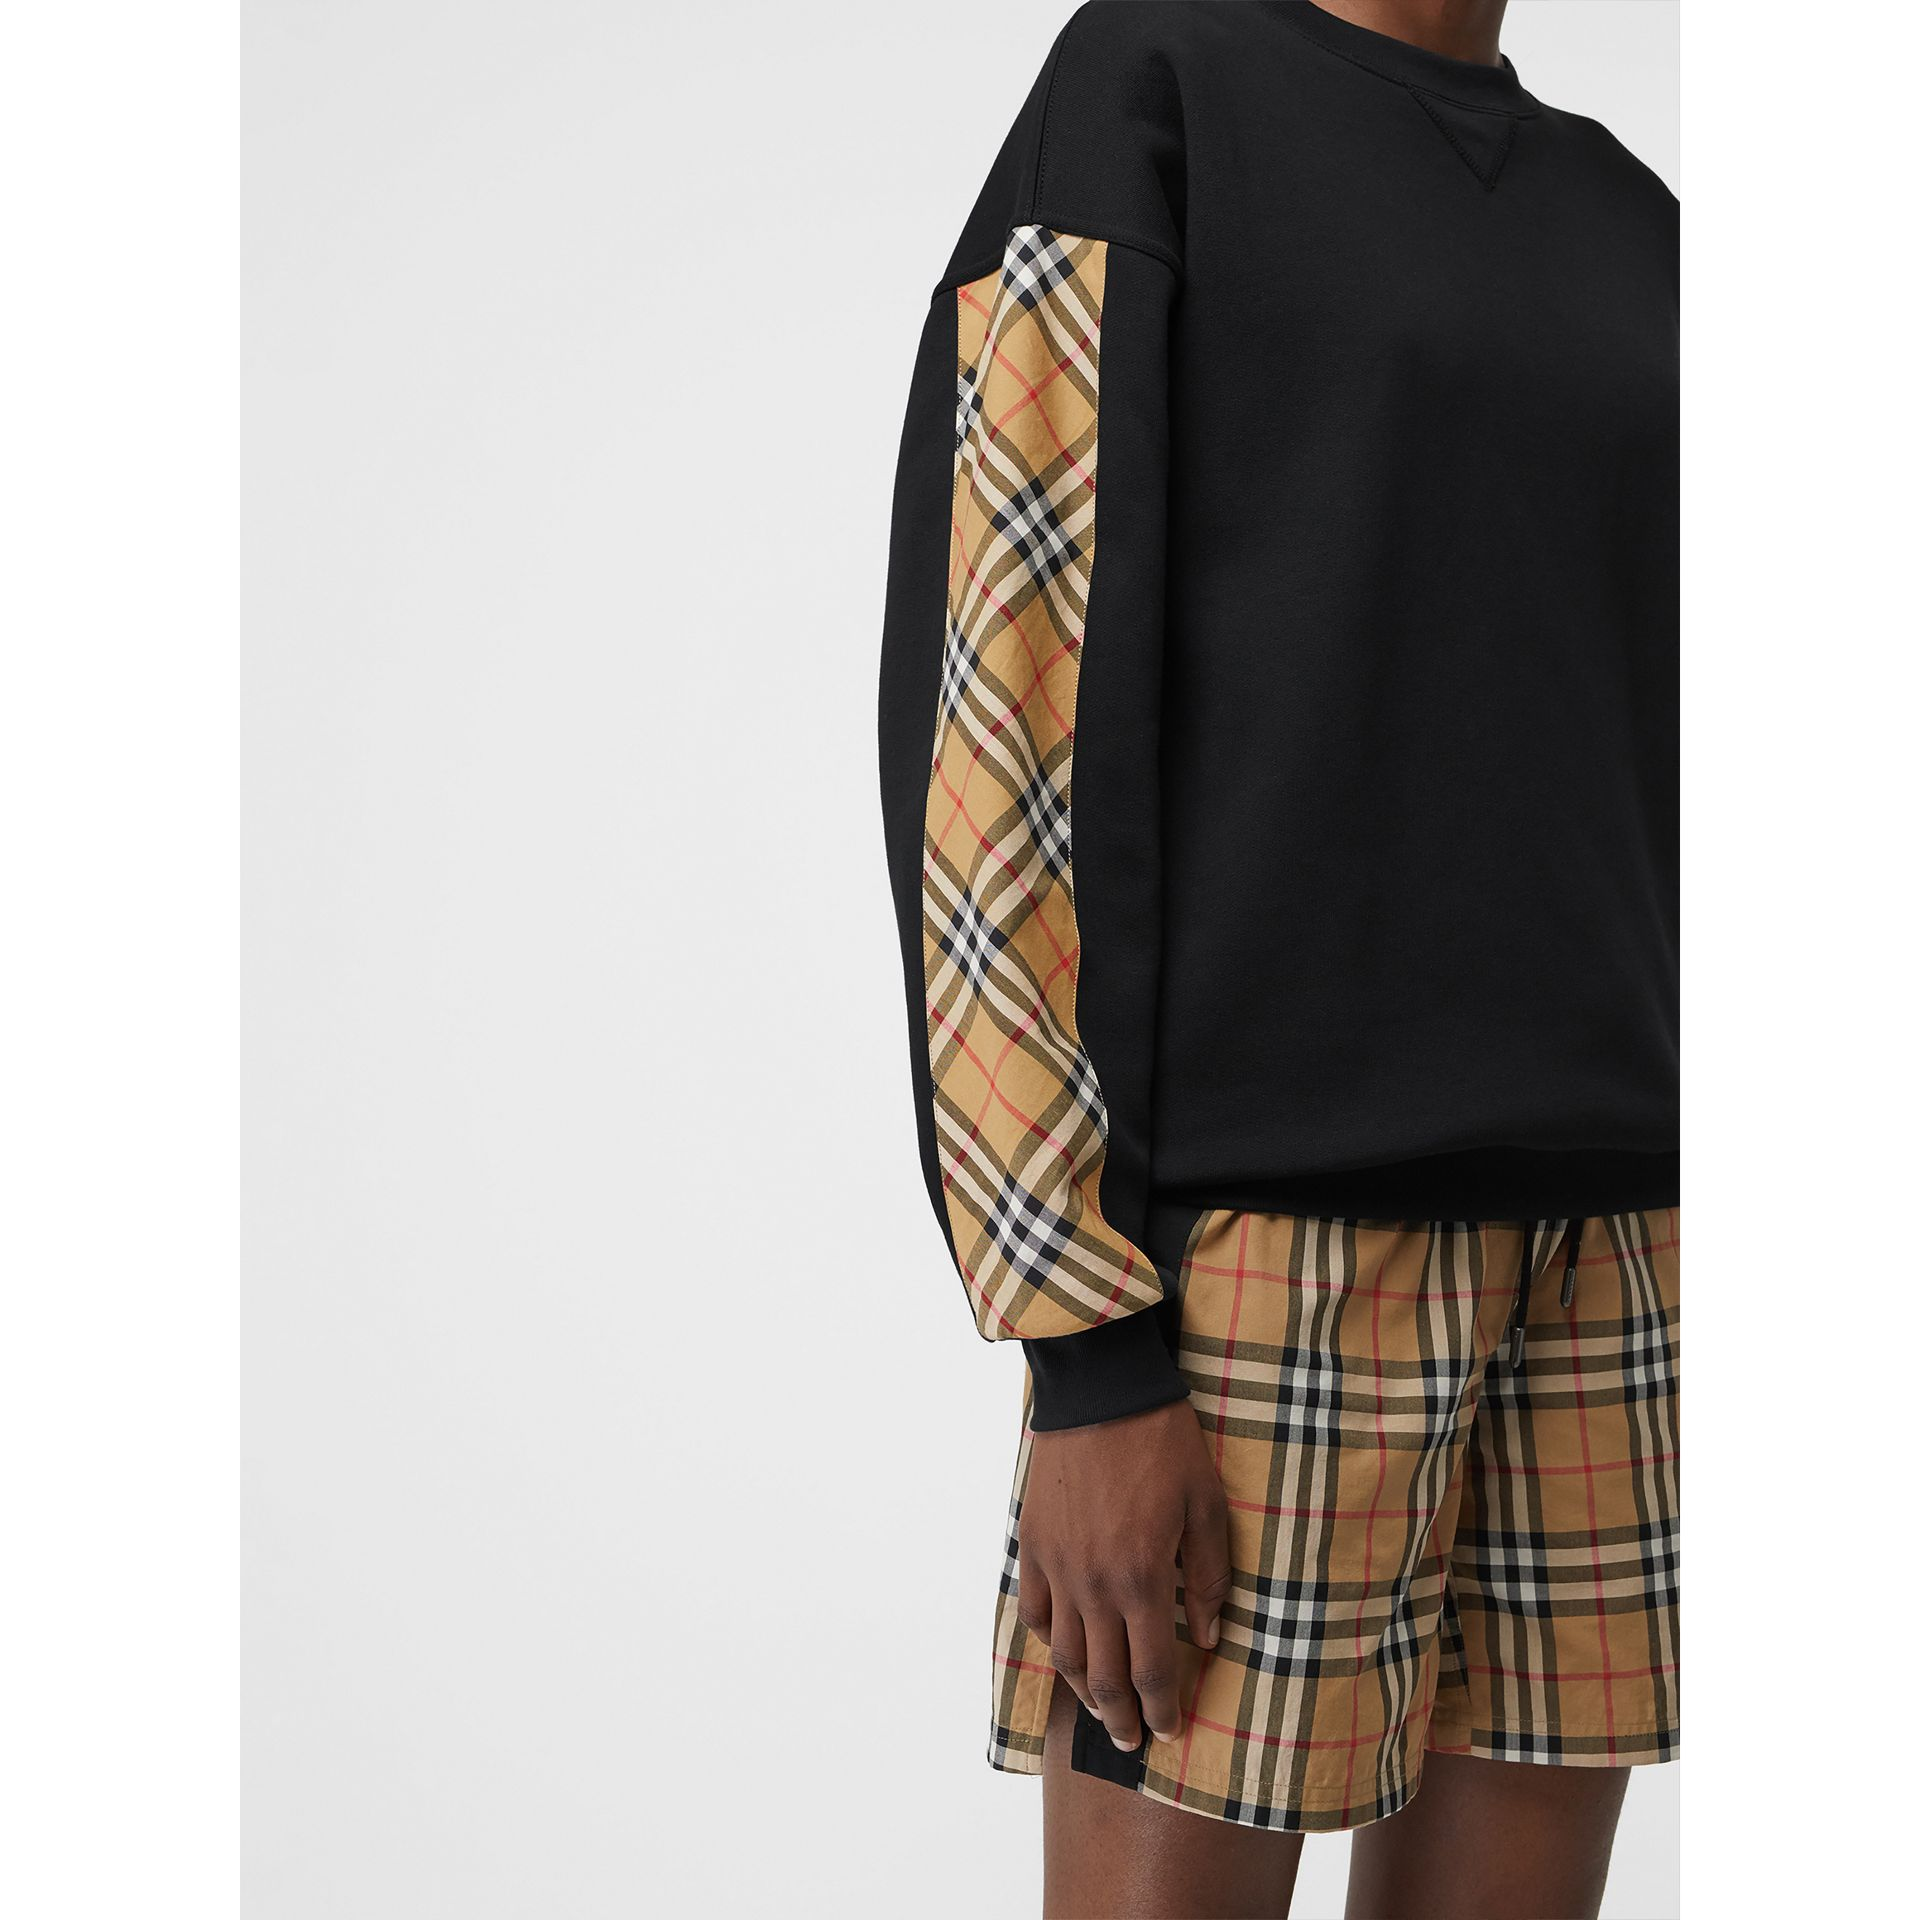 Vintage Check Detail Cotton Blend Sweatshirt in Black - Women | Burberry Hong Kong S.A.R - gallery image 1